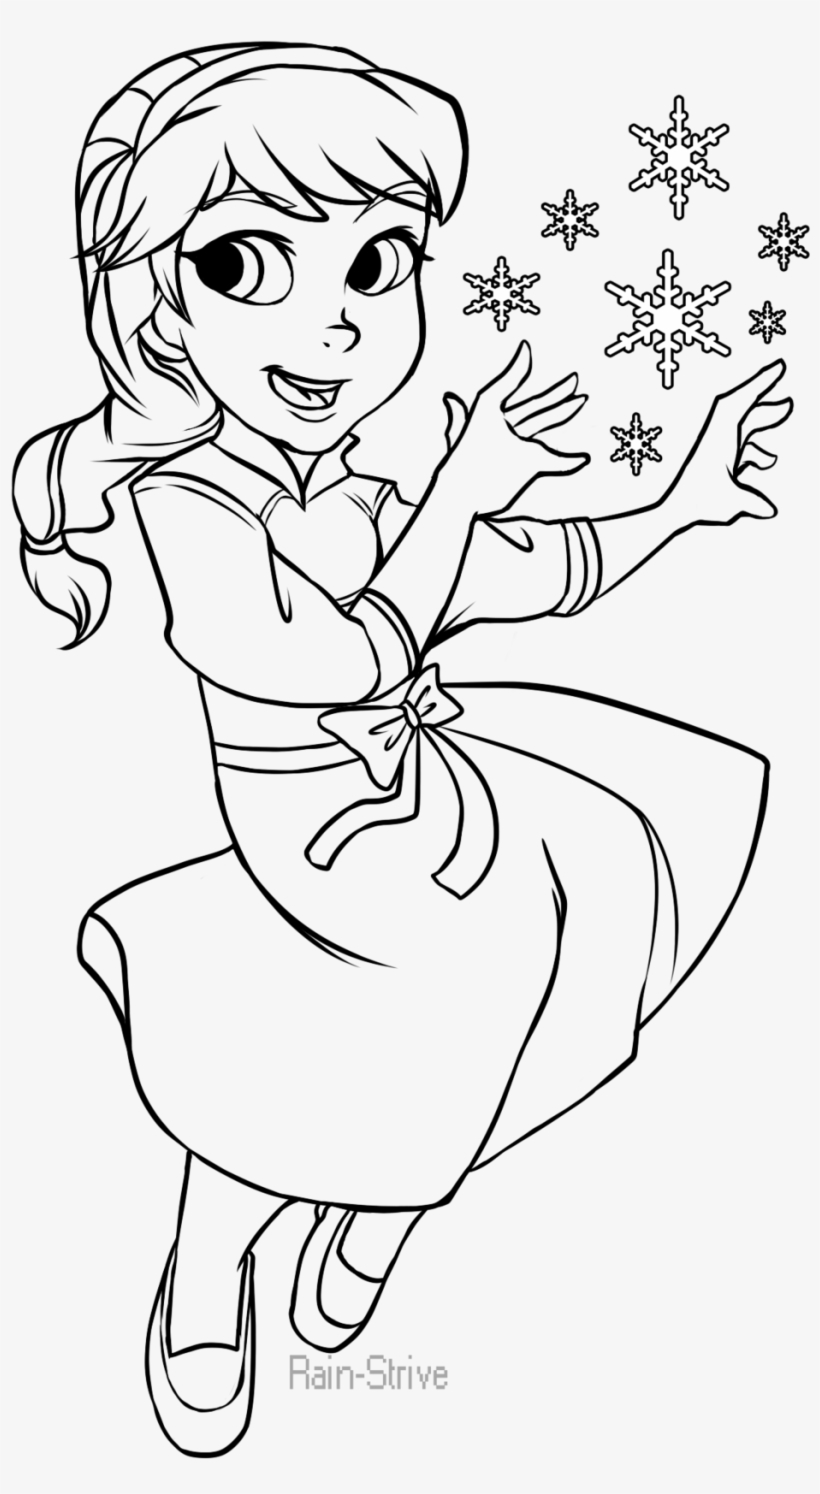 Disney Frozen Coloring Pages On Page Elsa And Anna Frozen Png Image Transparent Png Free Download On Seekpng